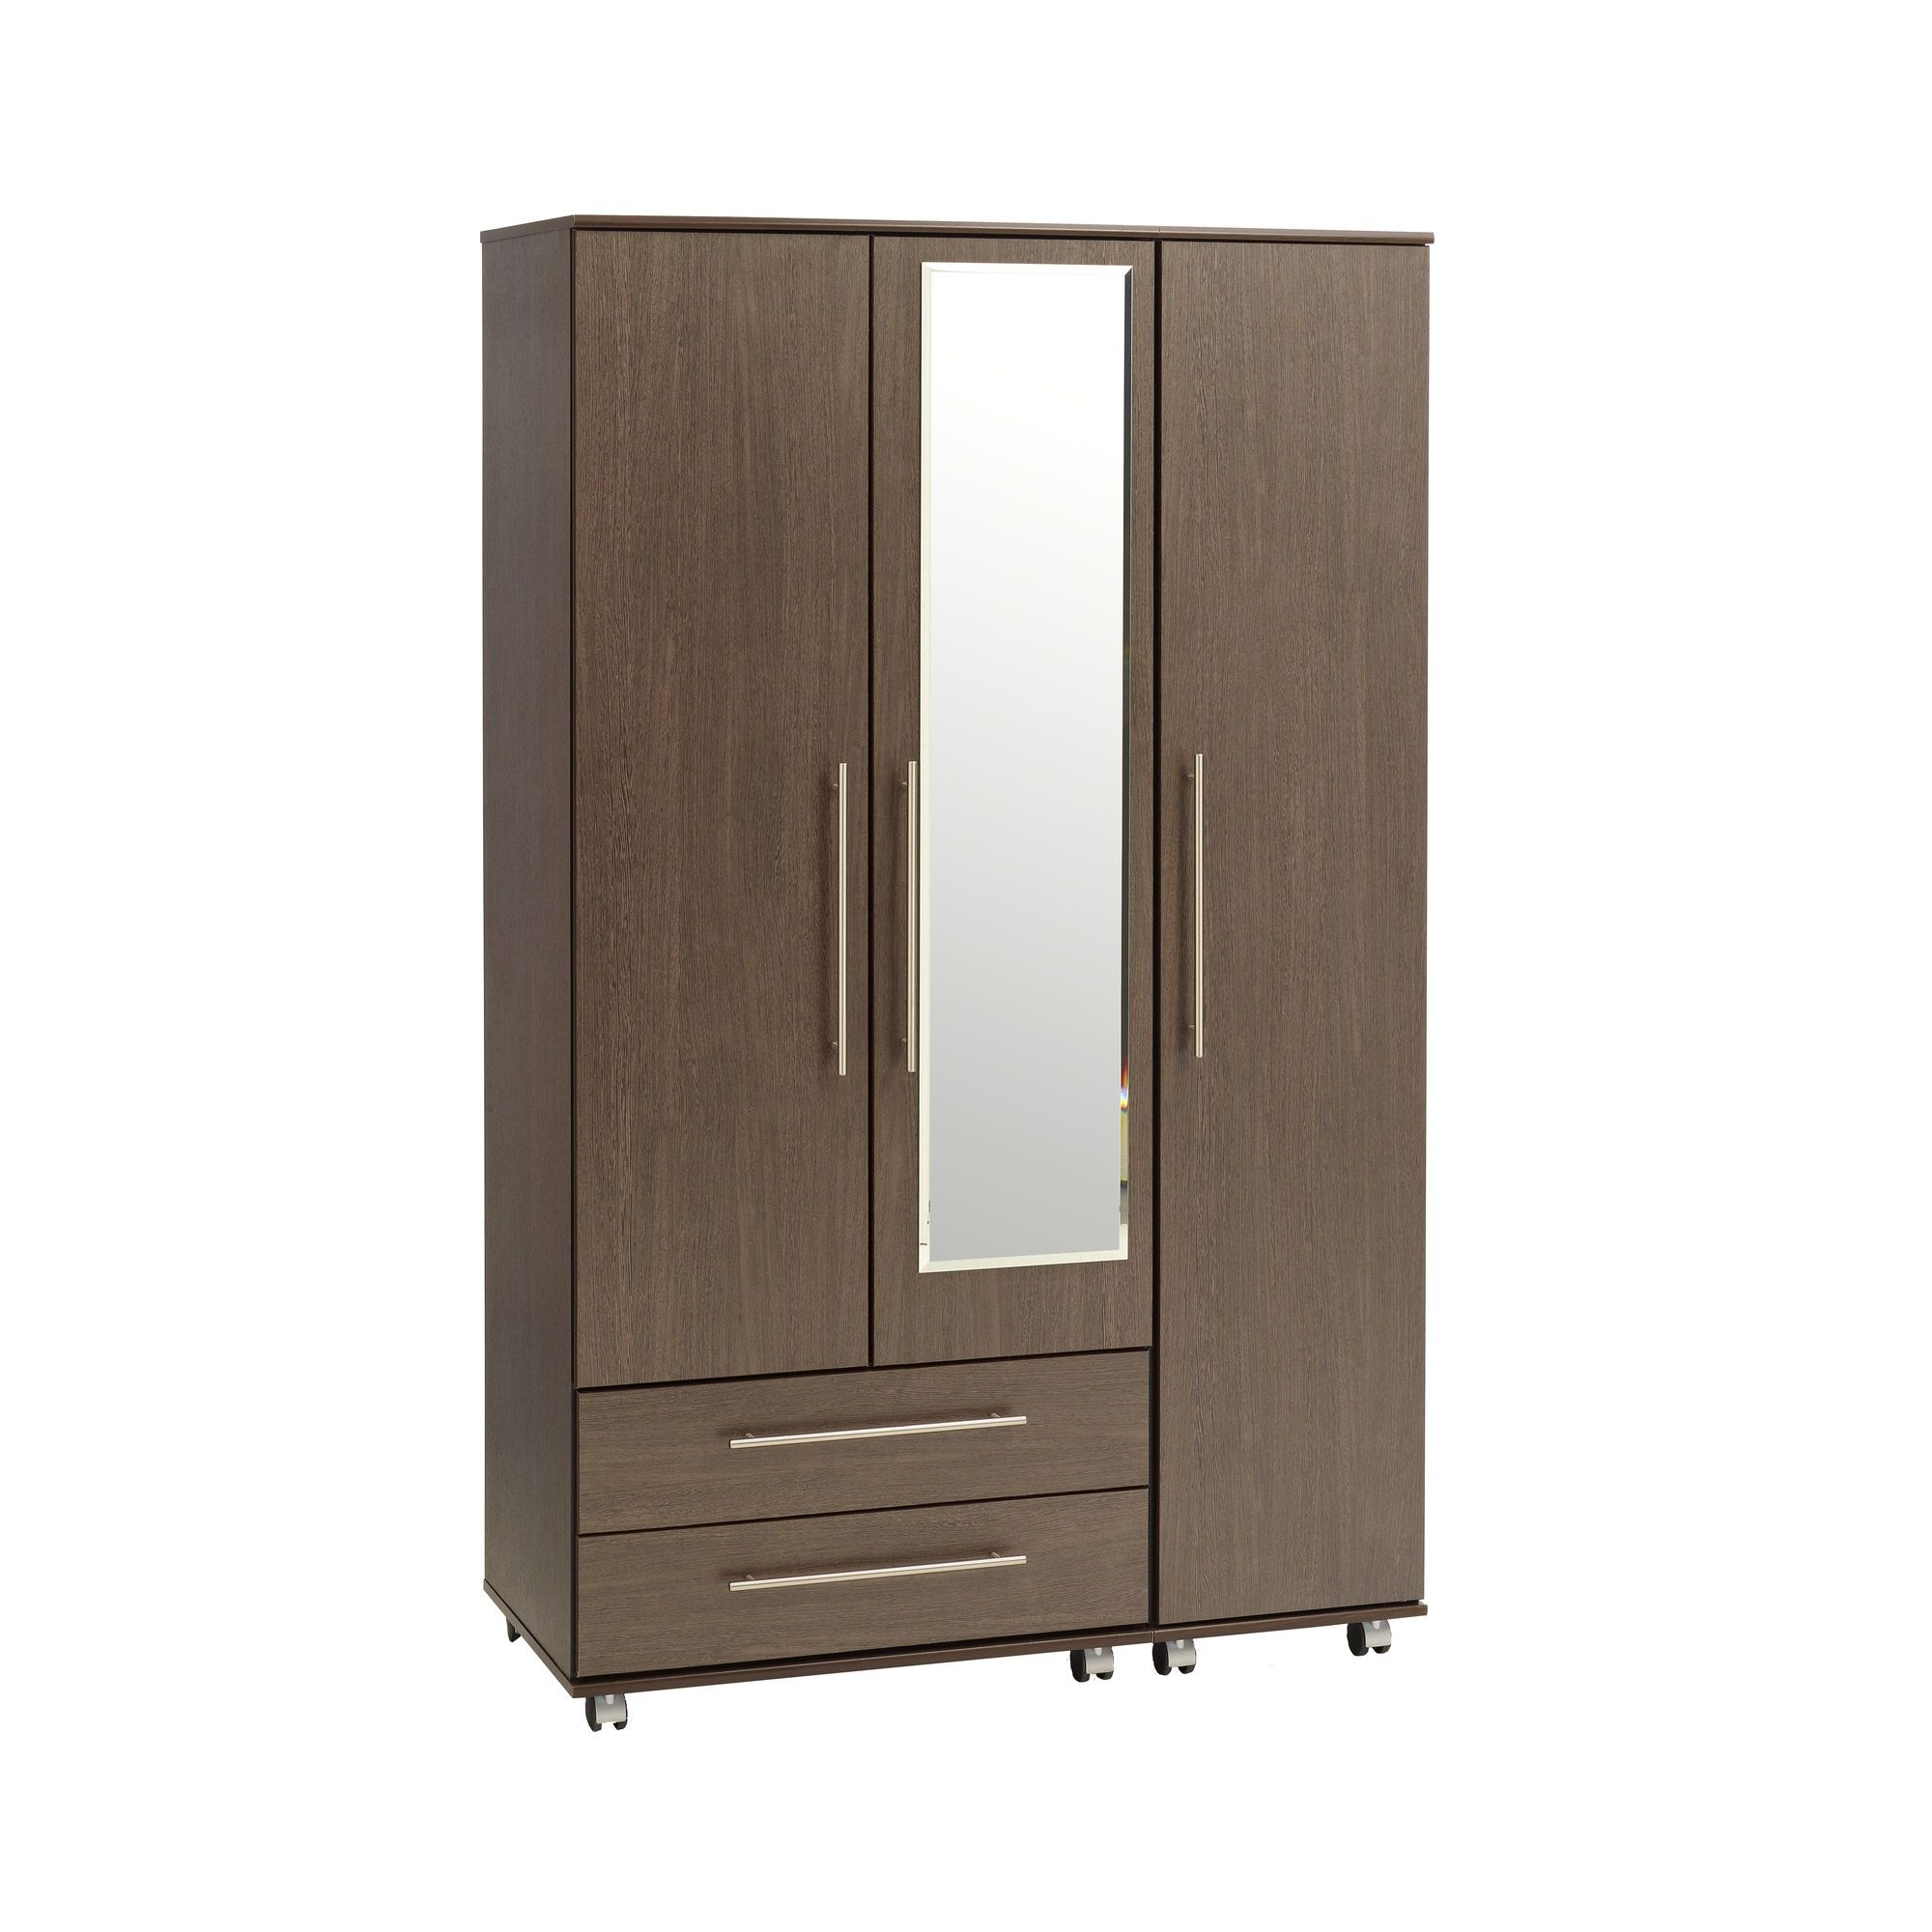 Ideal Furniture New York Triple Wardrobe with Two Drawers and Mirror - Wenge at Tesco Direct